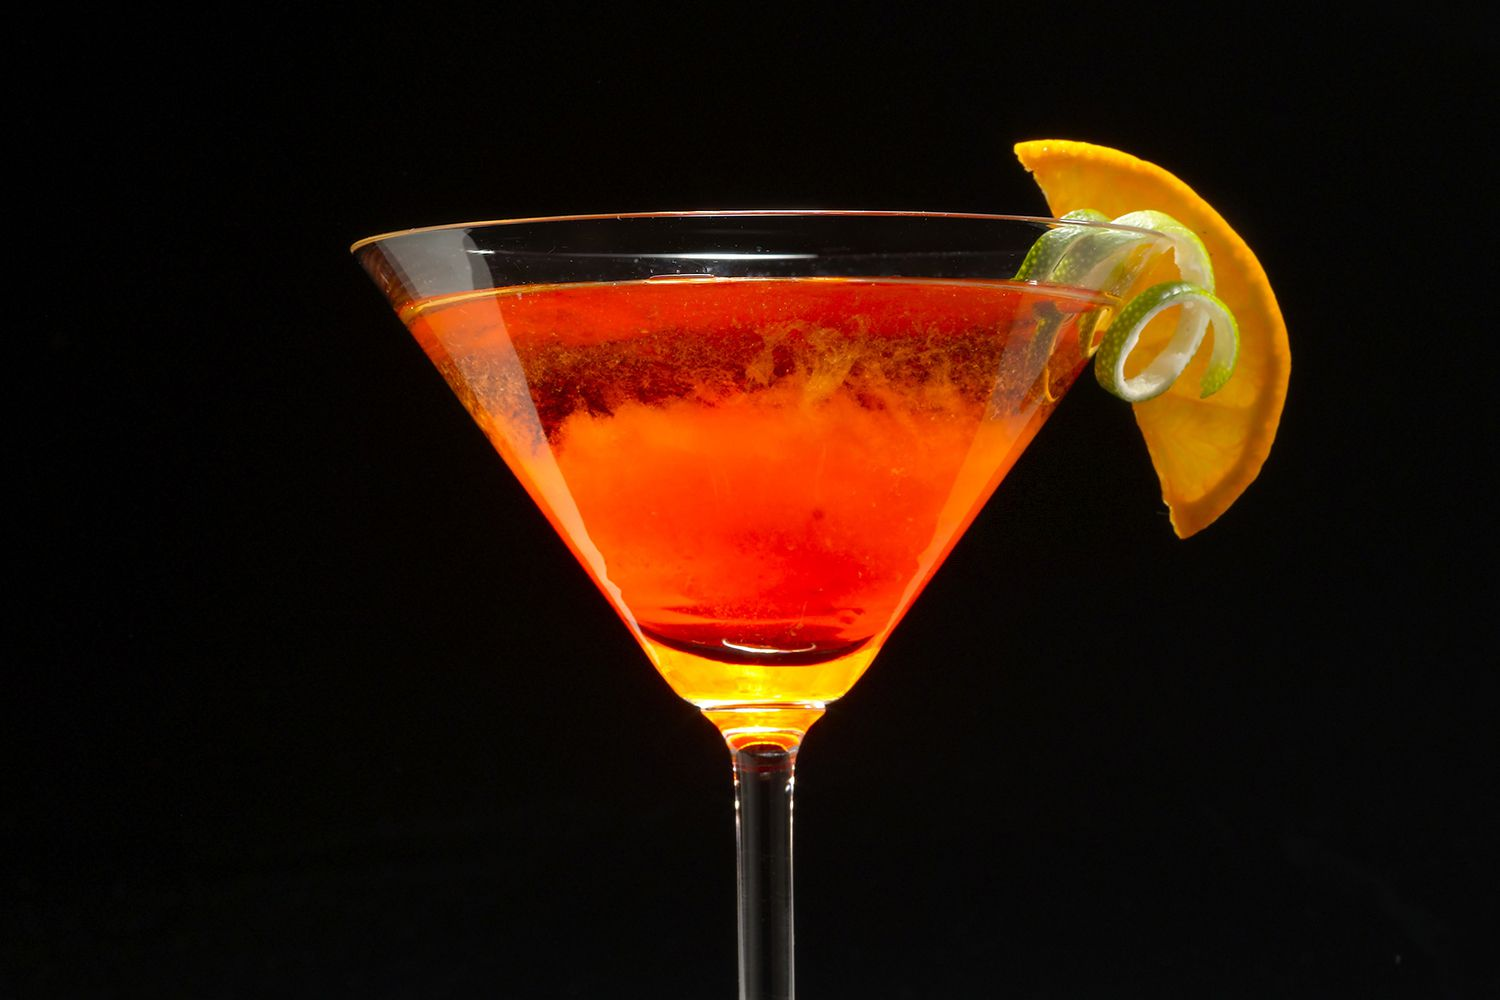 A Fantastic Dinner Drink for Autumn Evenings